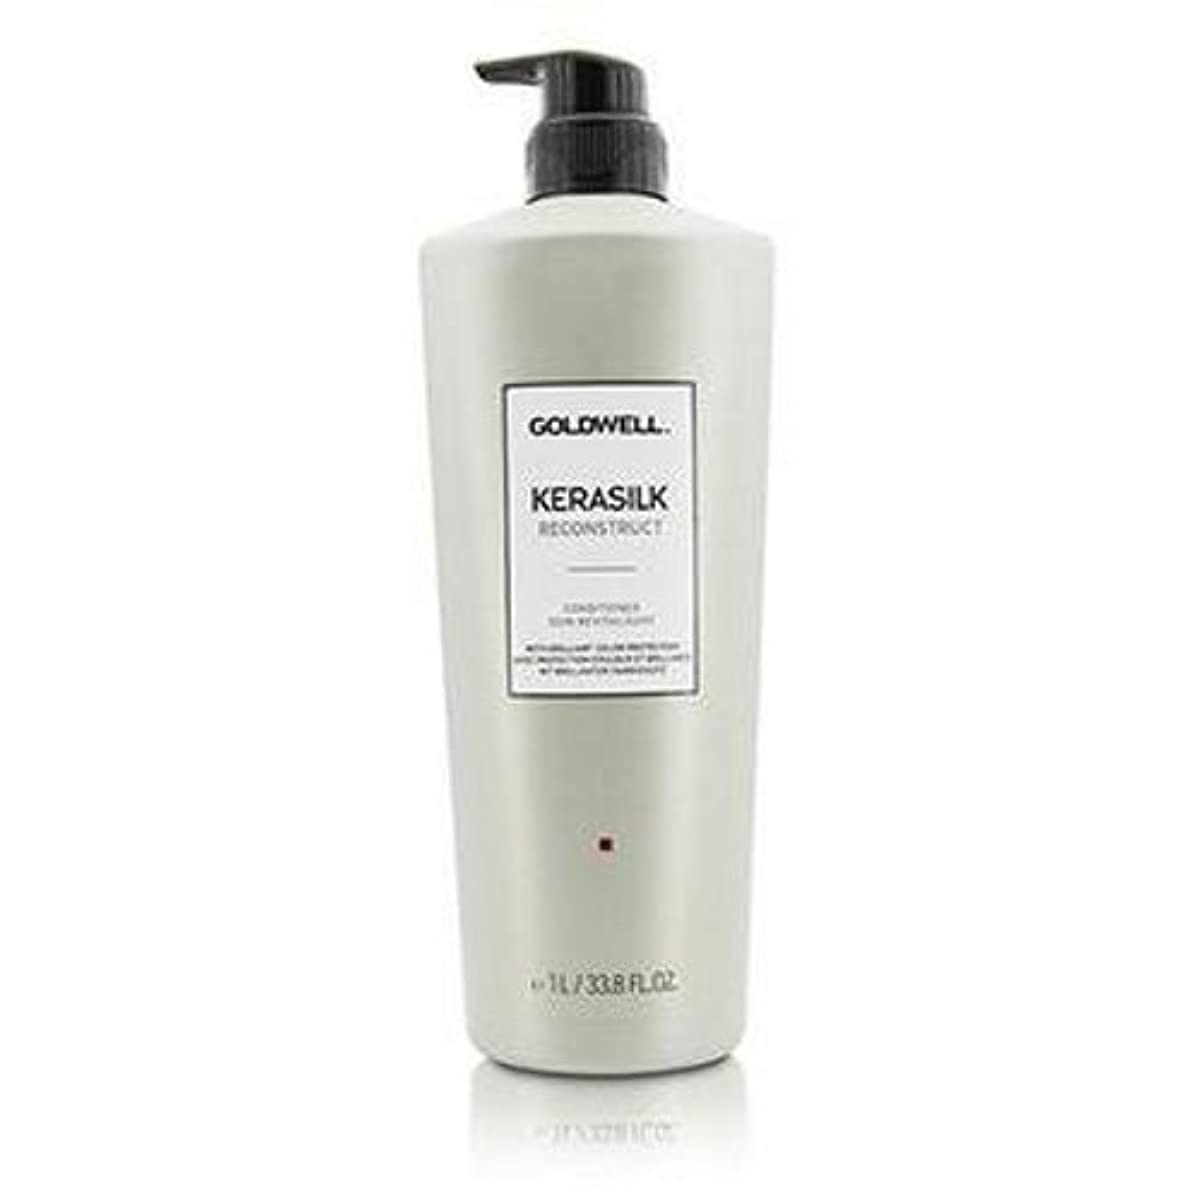 苦情文句酔う交換可能ゴールドウェル Kerasilk Reconstruct Conditioner (For Stressed and Damaged Hair) 1000ml